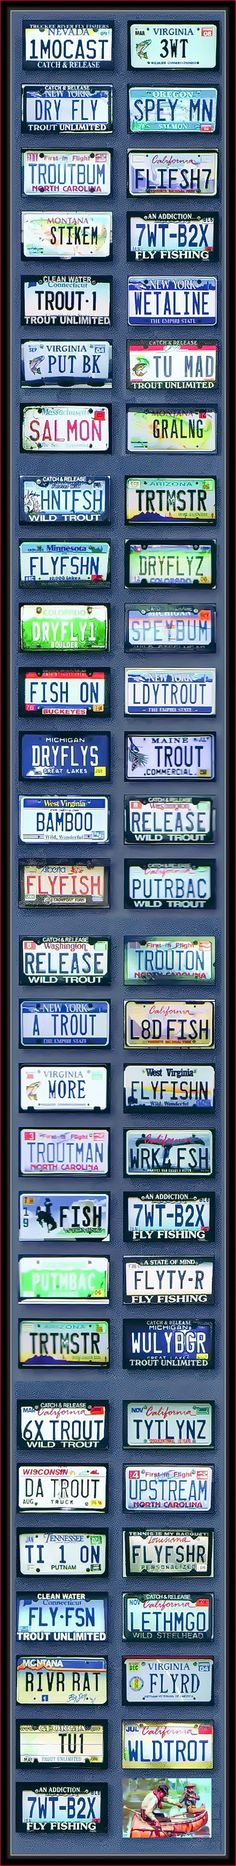 Somebody's wonderful collection of sports fishing orientated license plates. But they're missing Iowa's REAP trout plate! Maybe use these creative ideas for your own personalized trout plate.